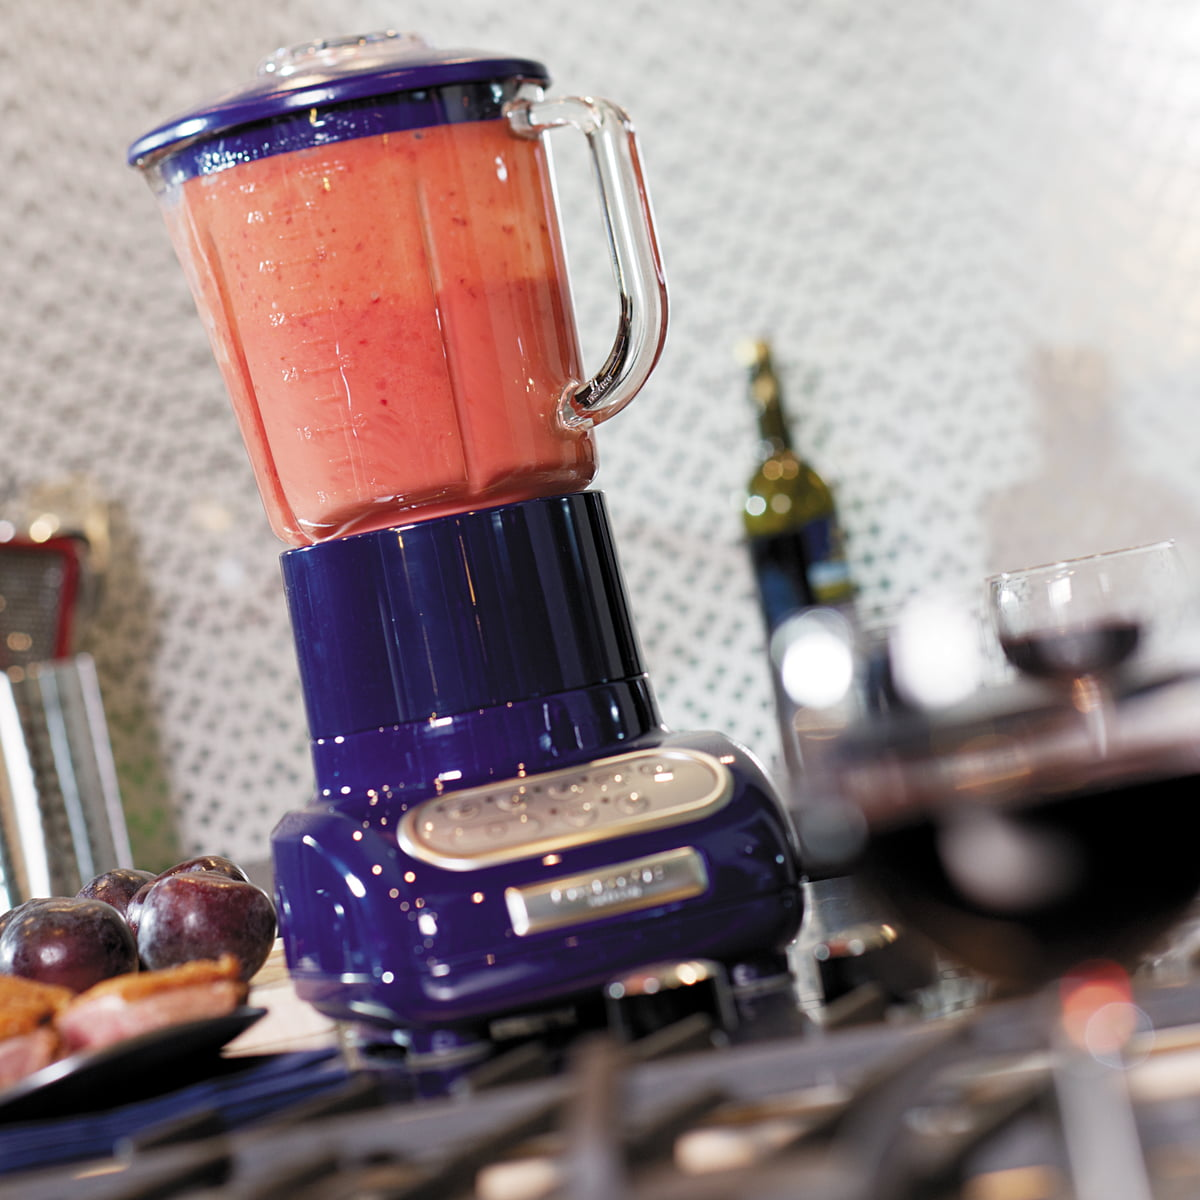 KitchenAid Artisan blender & glass container